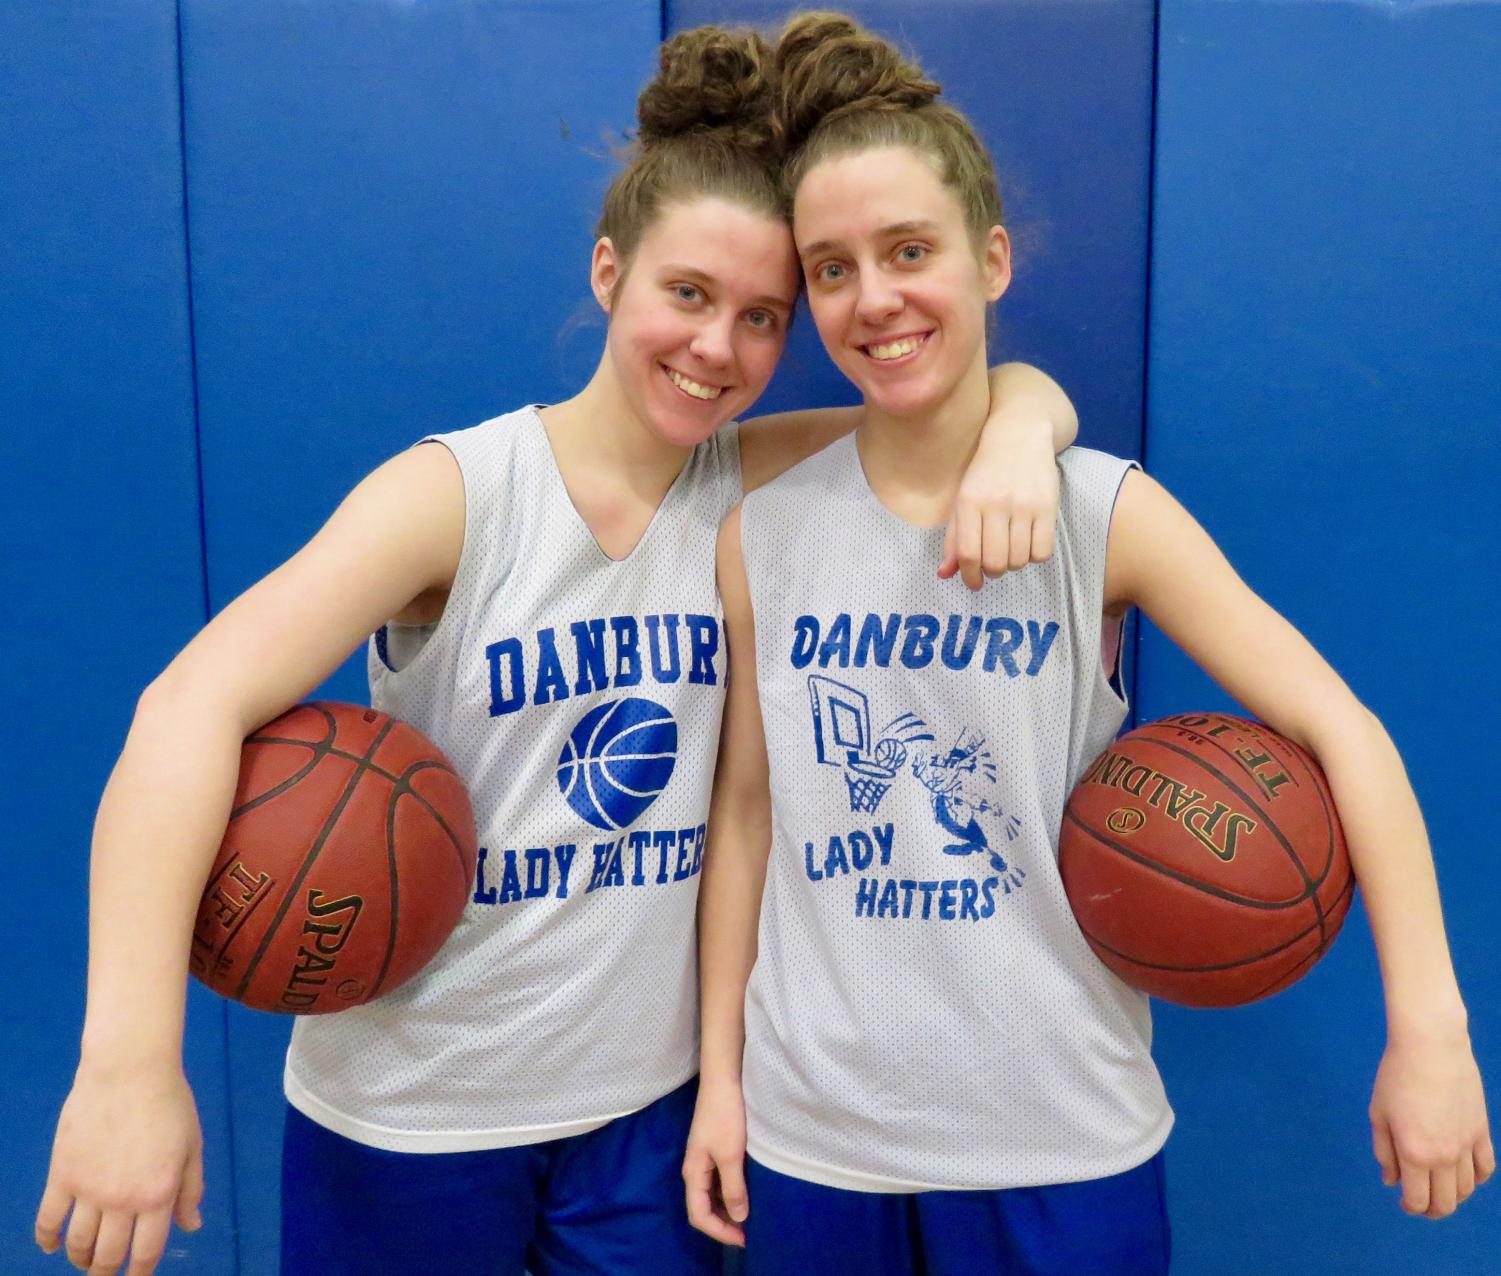 From left to right - Captains Sabrina Almeida and Susana Almeida at a recent basketball practice after-school.